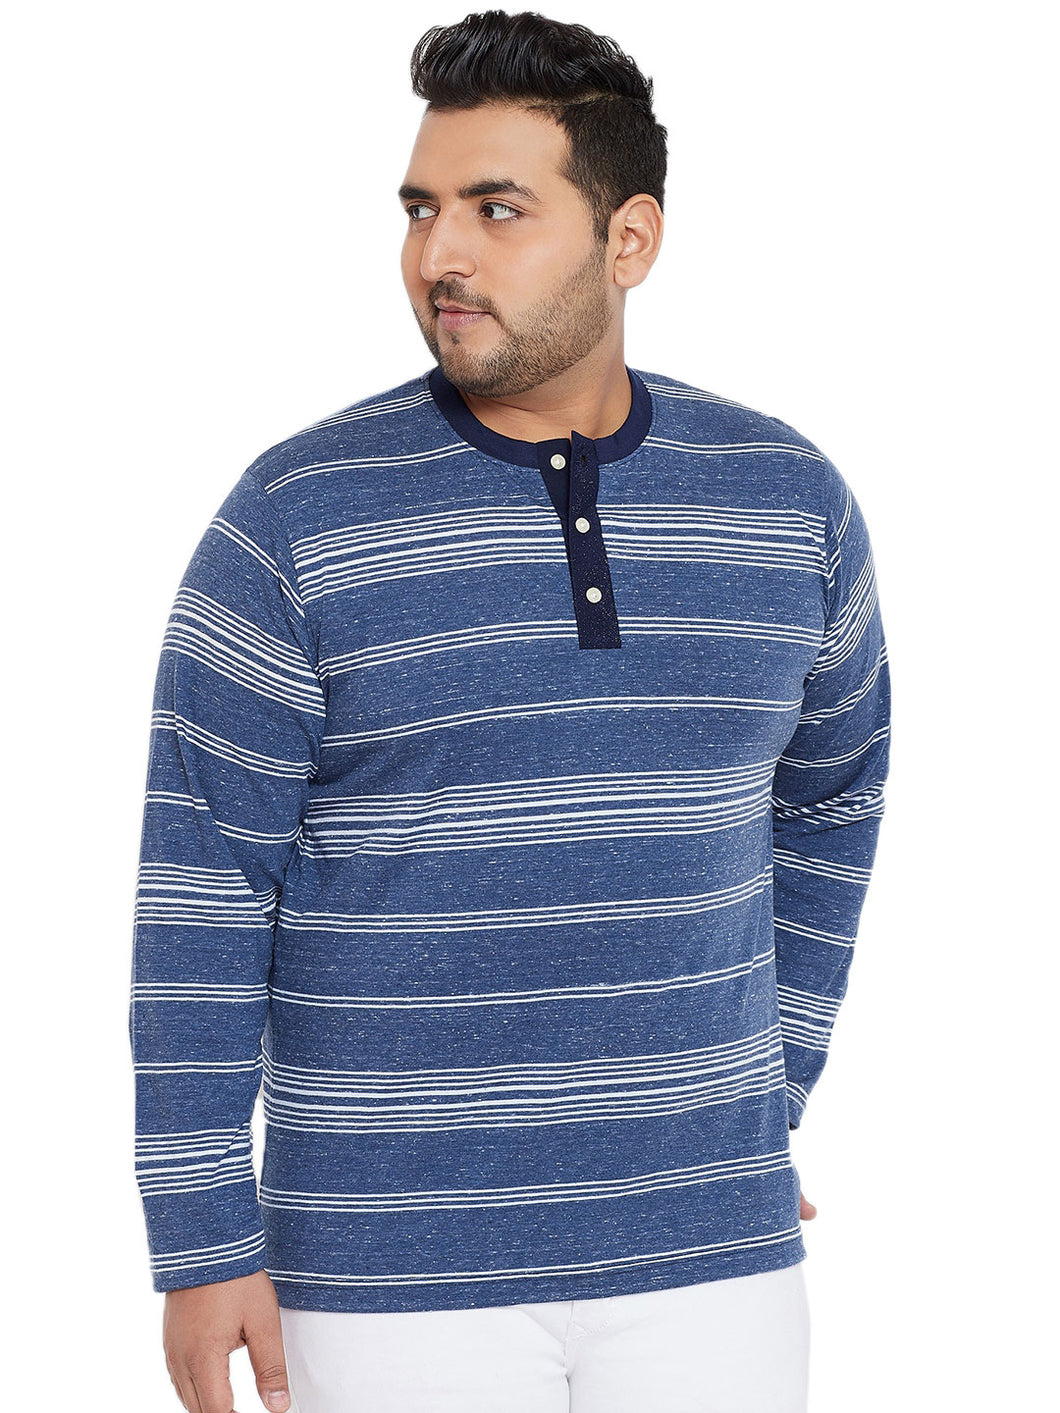 bigbanana Eldred White & Blue Striped Henley Plus Size Neck T-shirt